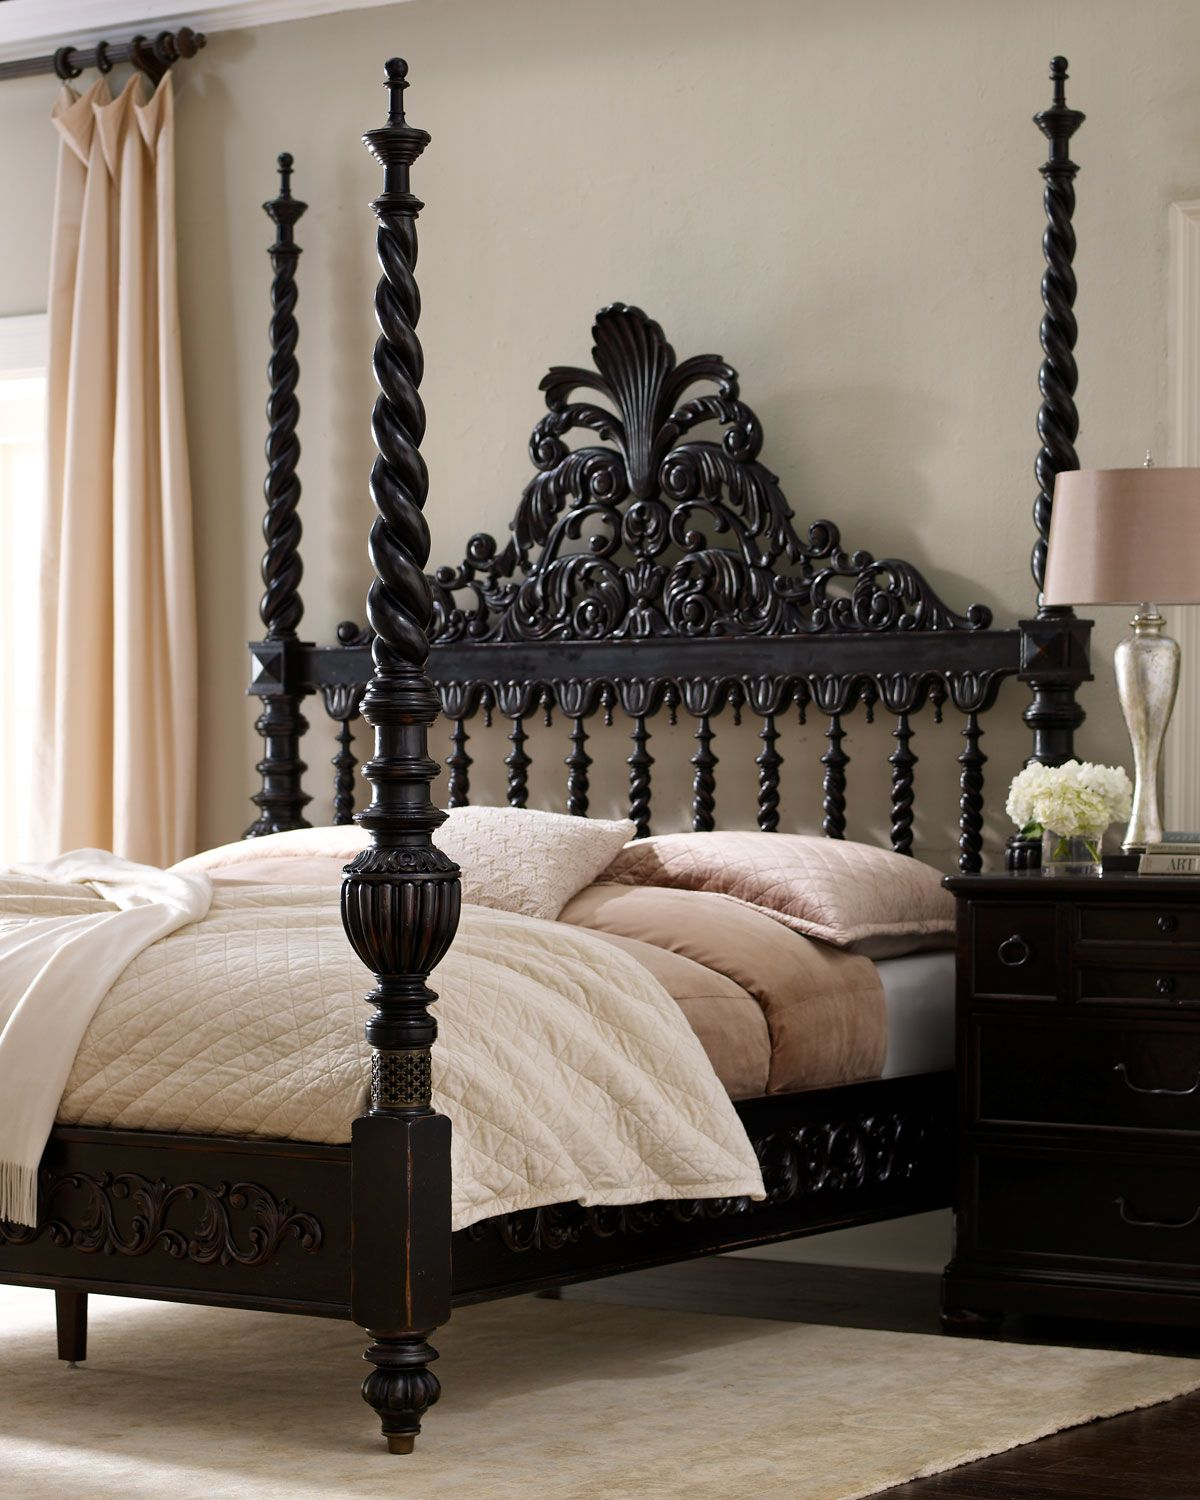 Phillips King Poster Bed King Poster Bed Bed Home Bedroom